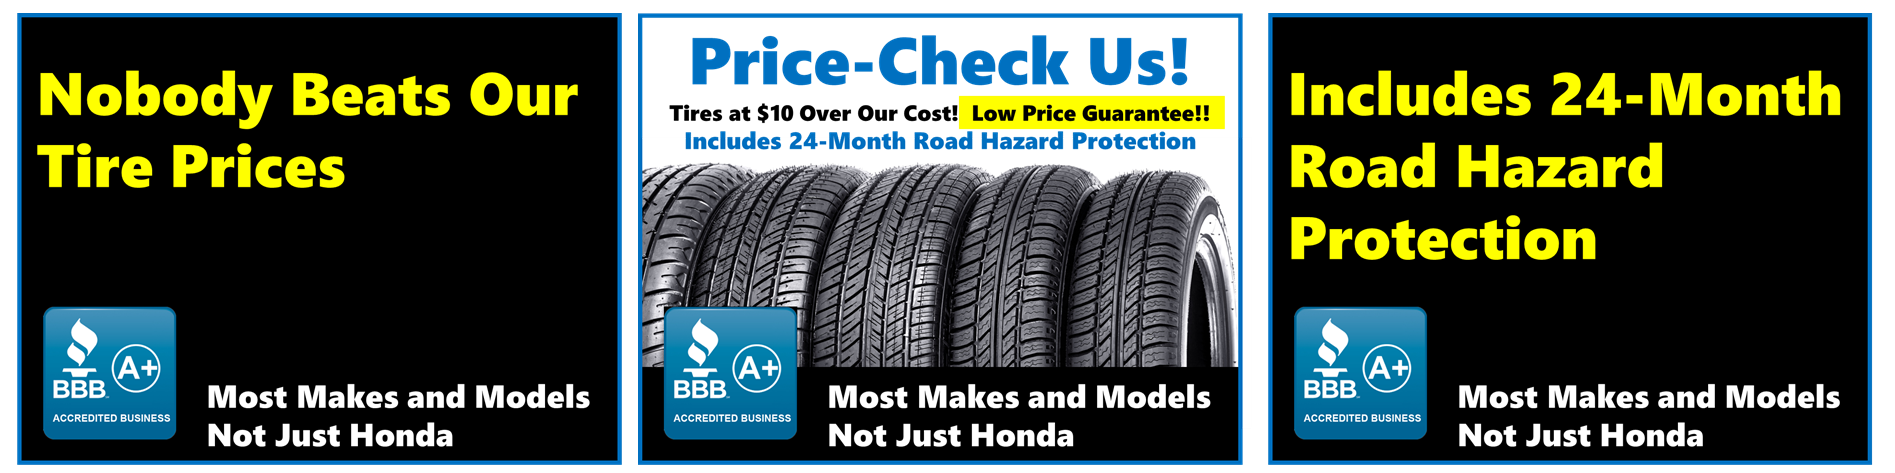 Buy New Tires Near Nipomo Ca Tire Sales And Service Near Me